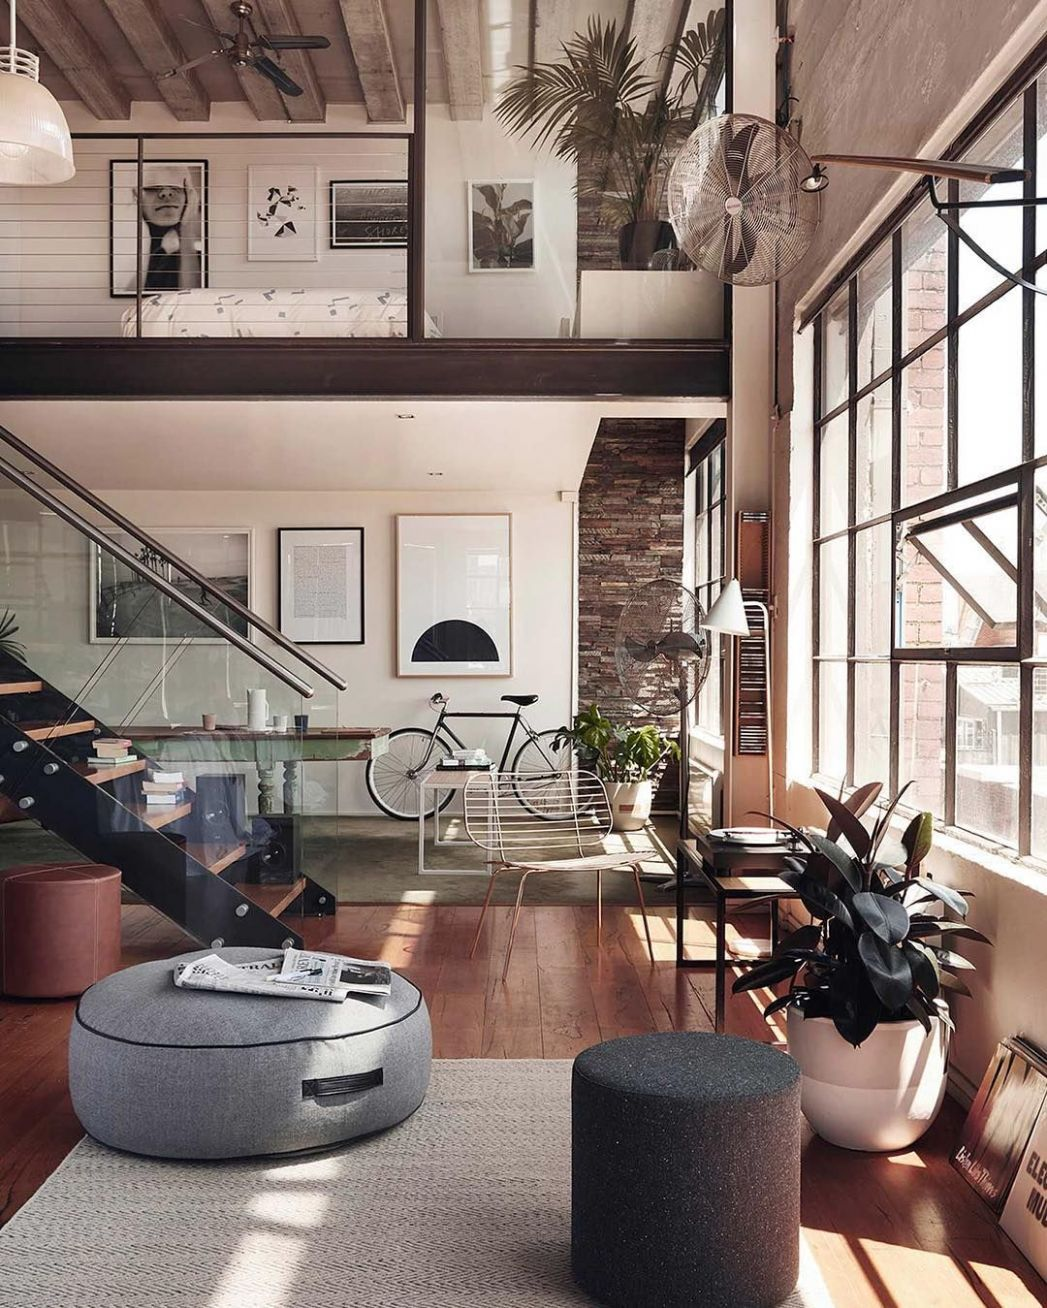 Pin by Penny Lane on home. | Loft design, Interior architecture ...